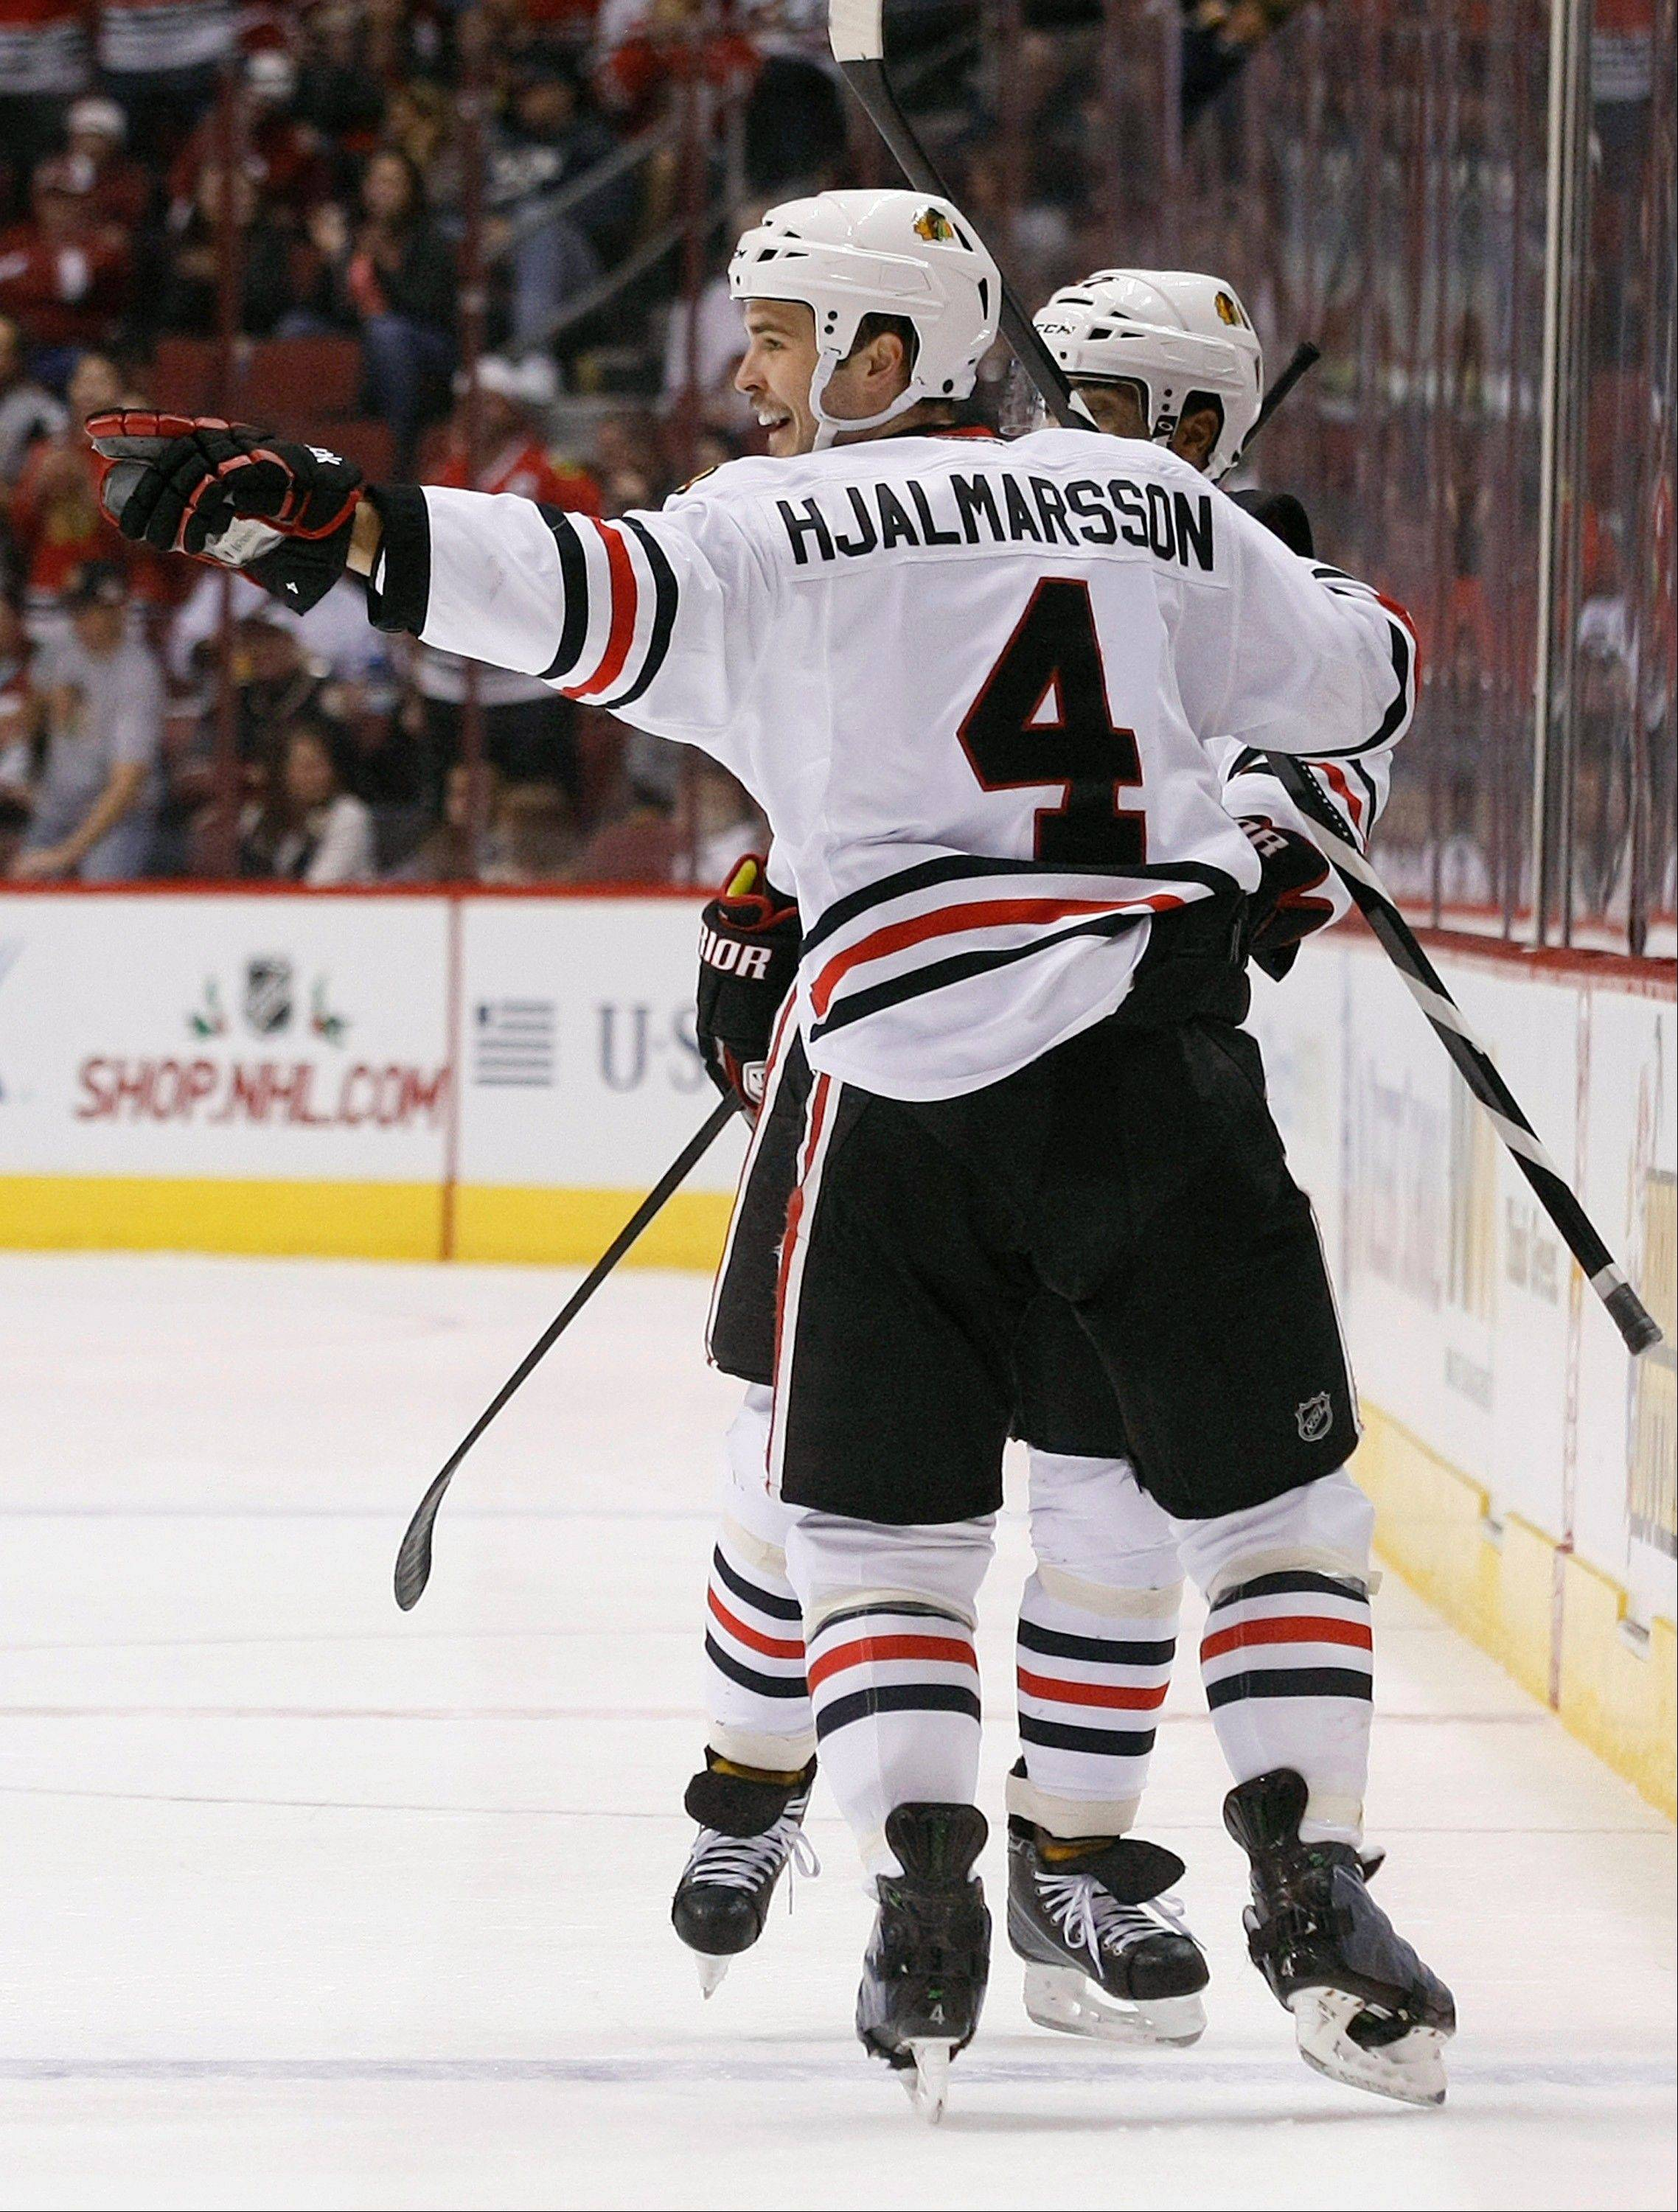 Chicago Blackhawks defenseman Niklas Hjalmarsson (4) celebrates after scoring a first period during an NHL hockey game against the Phoenix Coyotes on Saturday, Nov. 30, 2013, in Glendale, Ariz. (AP Photo/Rick Scuteri)